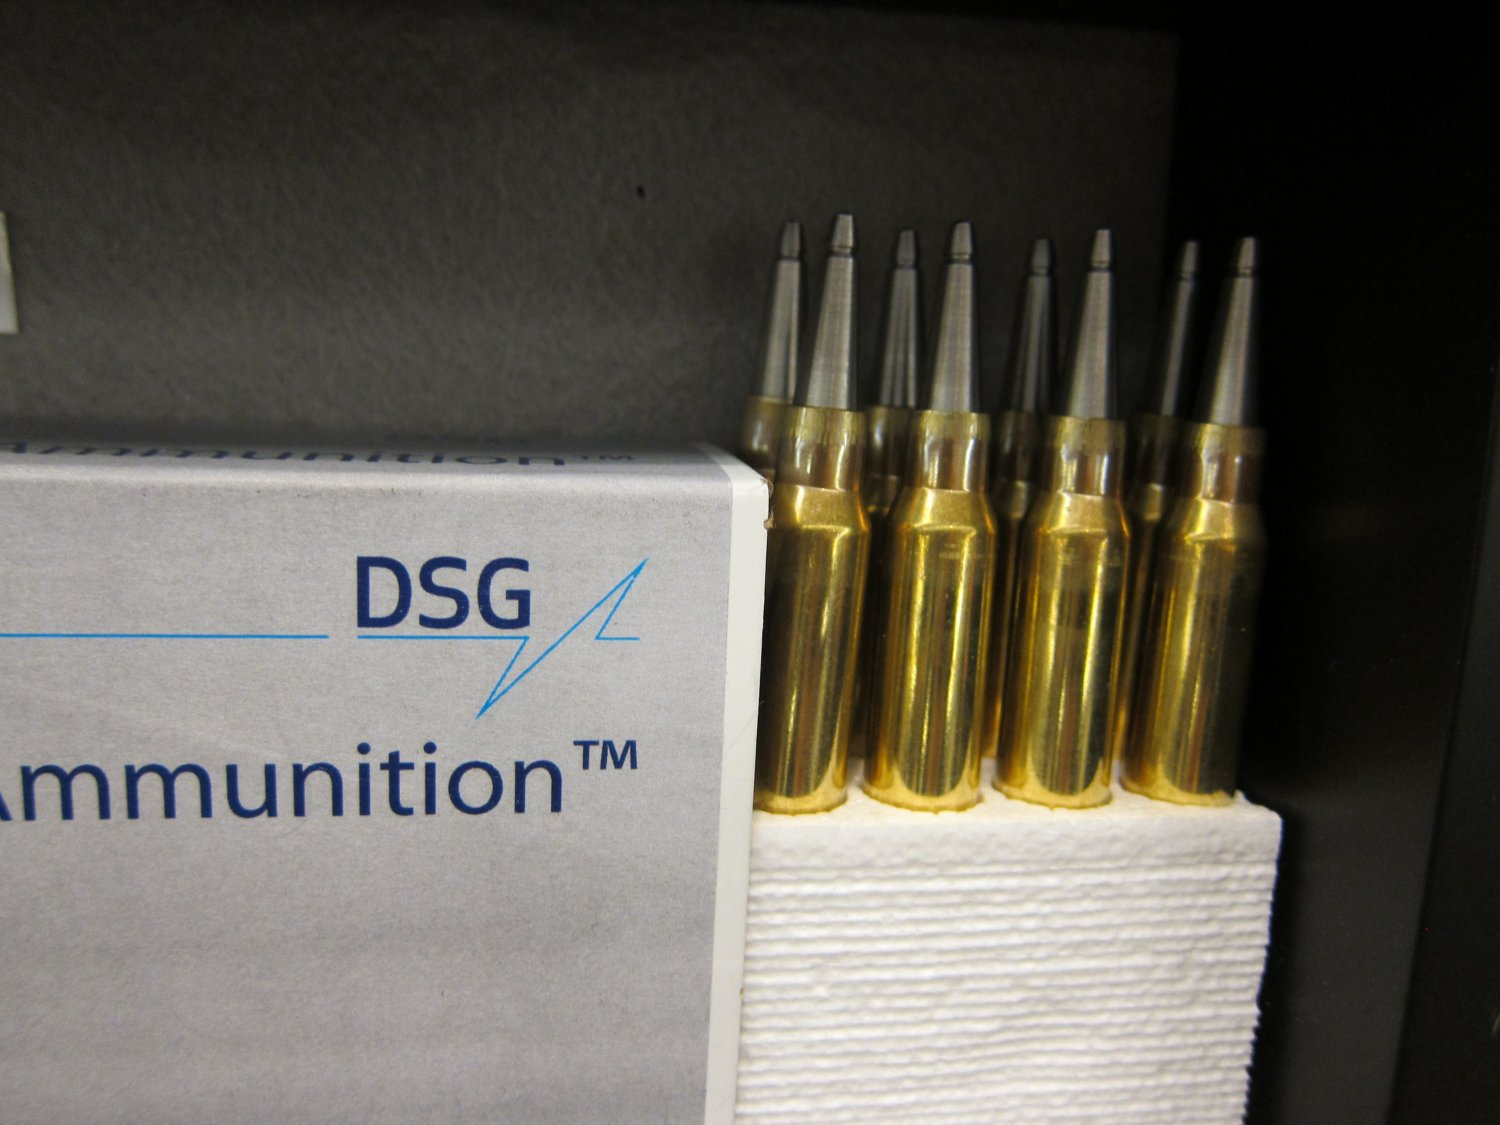 <!--:en-->DR Exclusive! Revolutionary DSG Technology Supercavitating Rifle Ammo for Shooting Underwater (Tactical Underwater Shooting), from Air to Water, and from Water to Air: Amphibious Multi-Environment Ammunition (MEA) for Tactical Waterborne Operations (Photos and Video!) <!--:-->